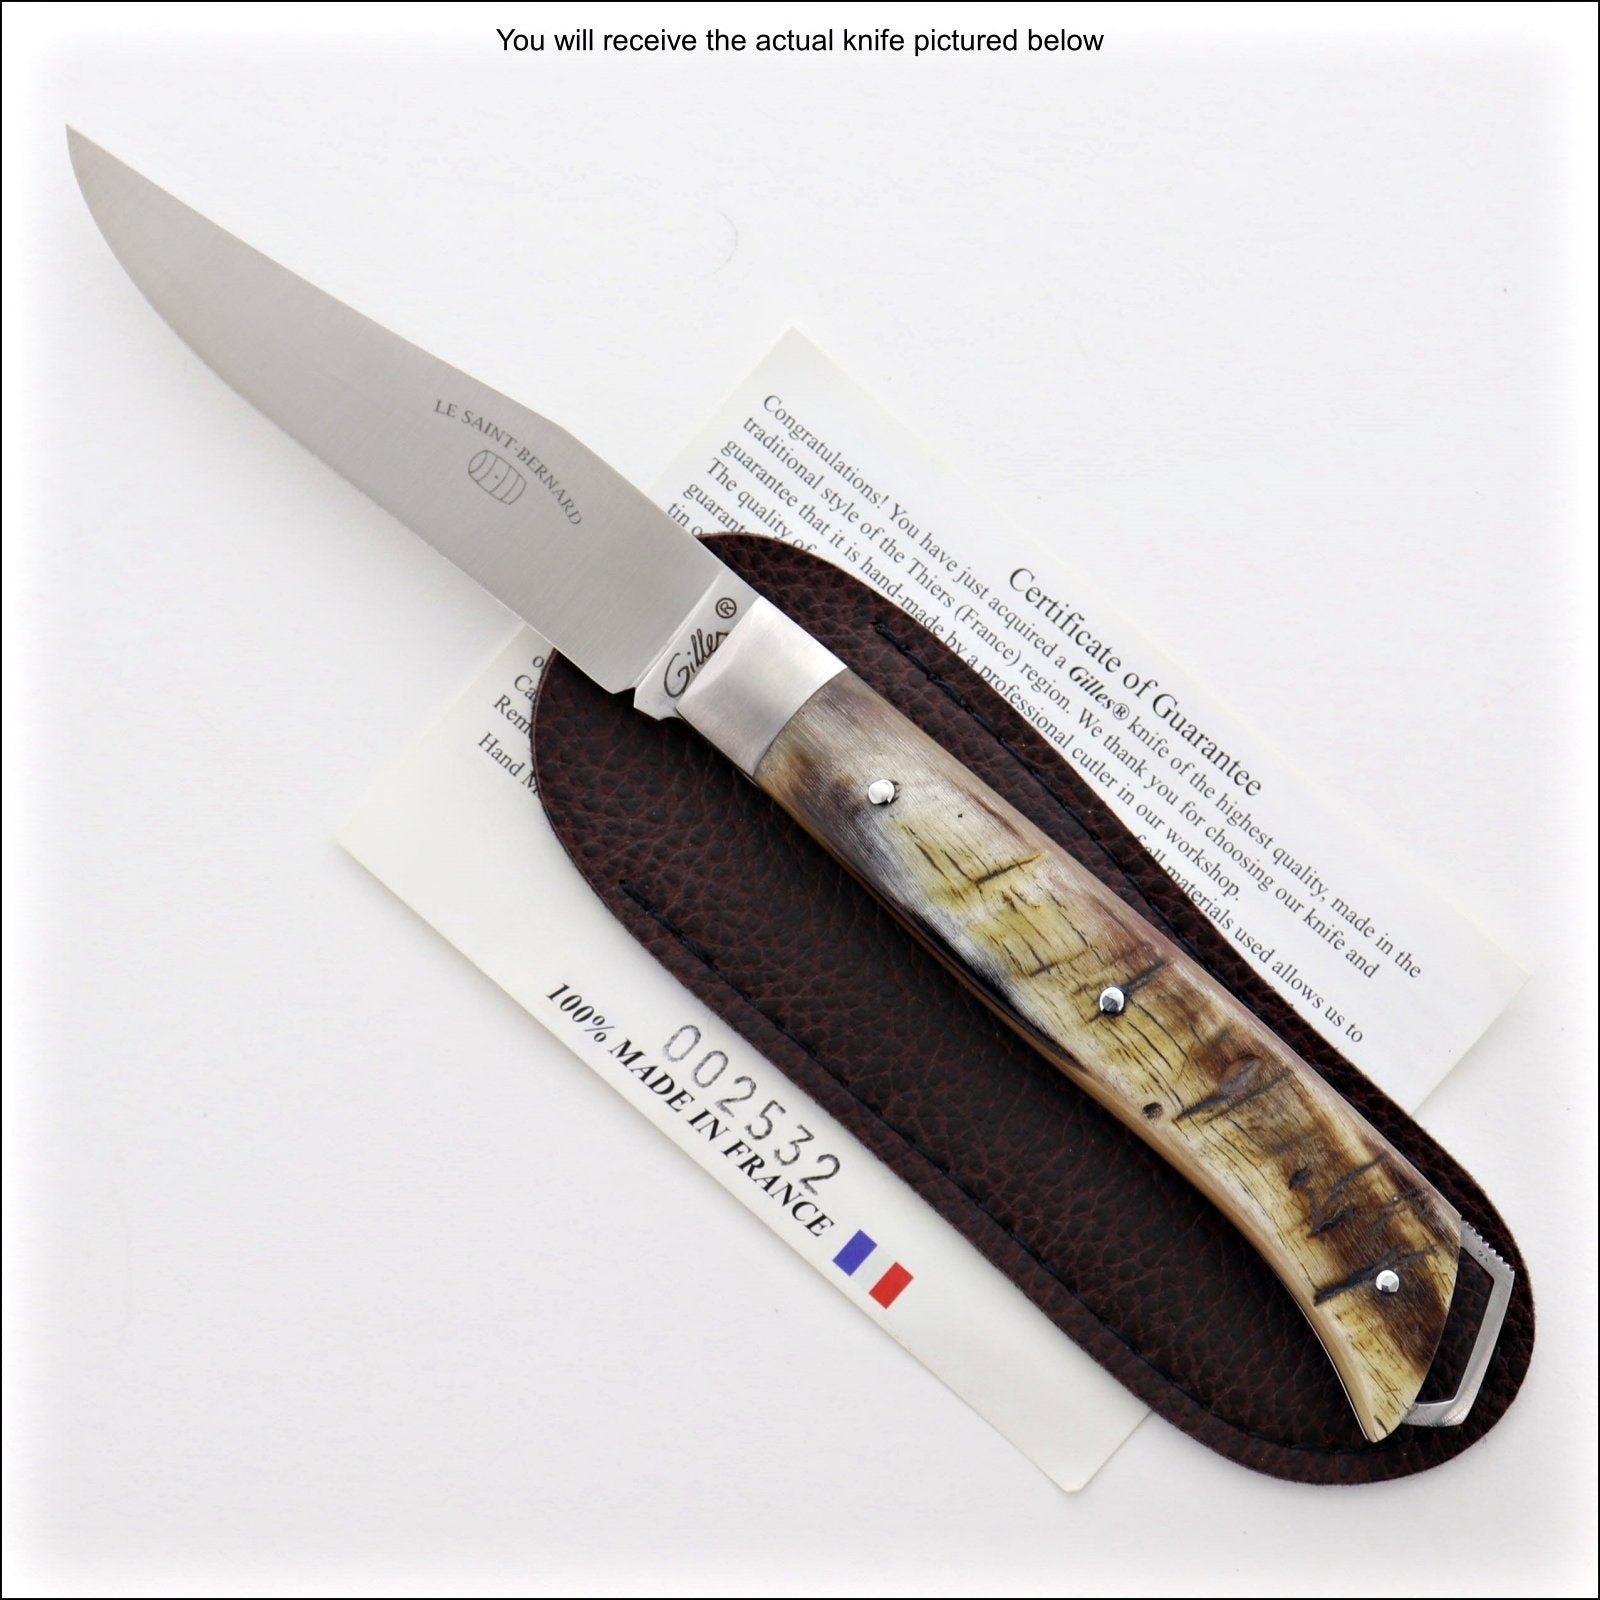 Le Saint-Bernard Pocket Knife - Ram Horn Handle - F